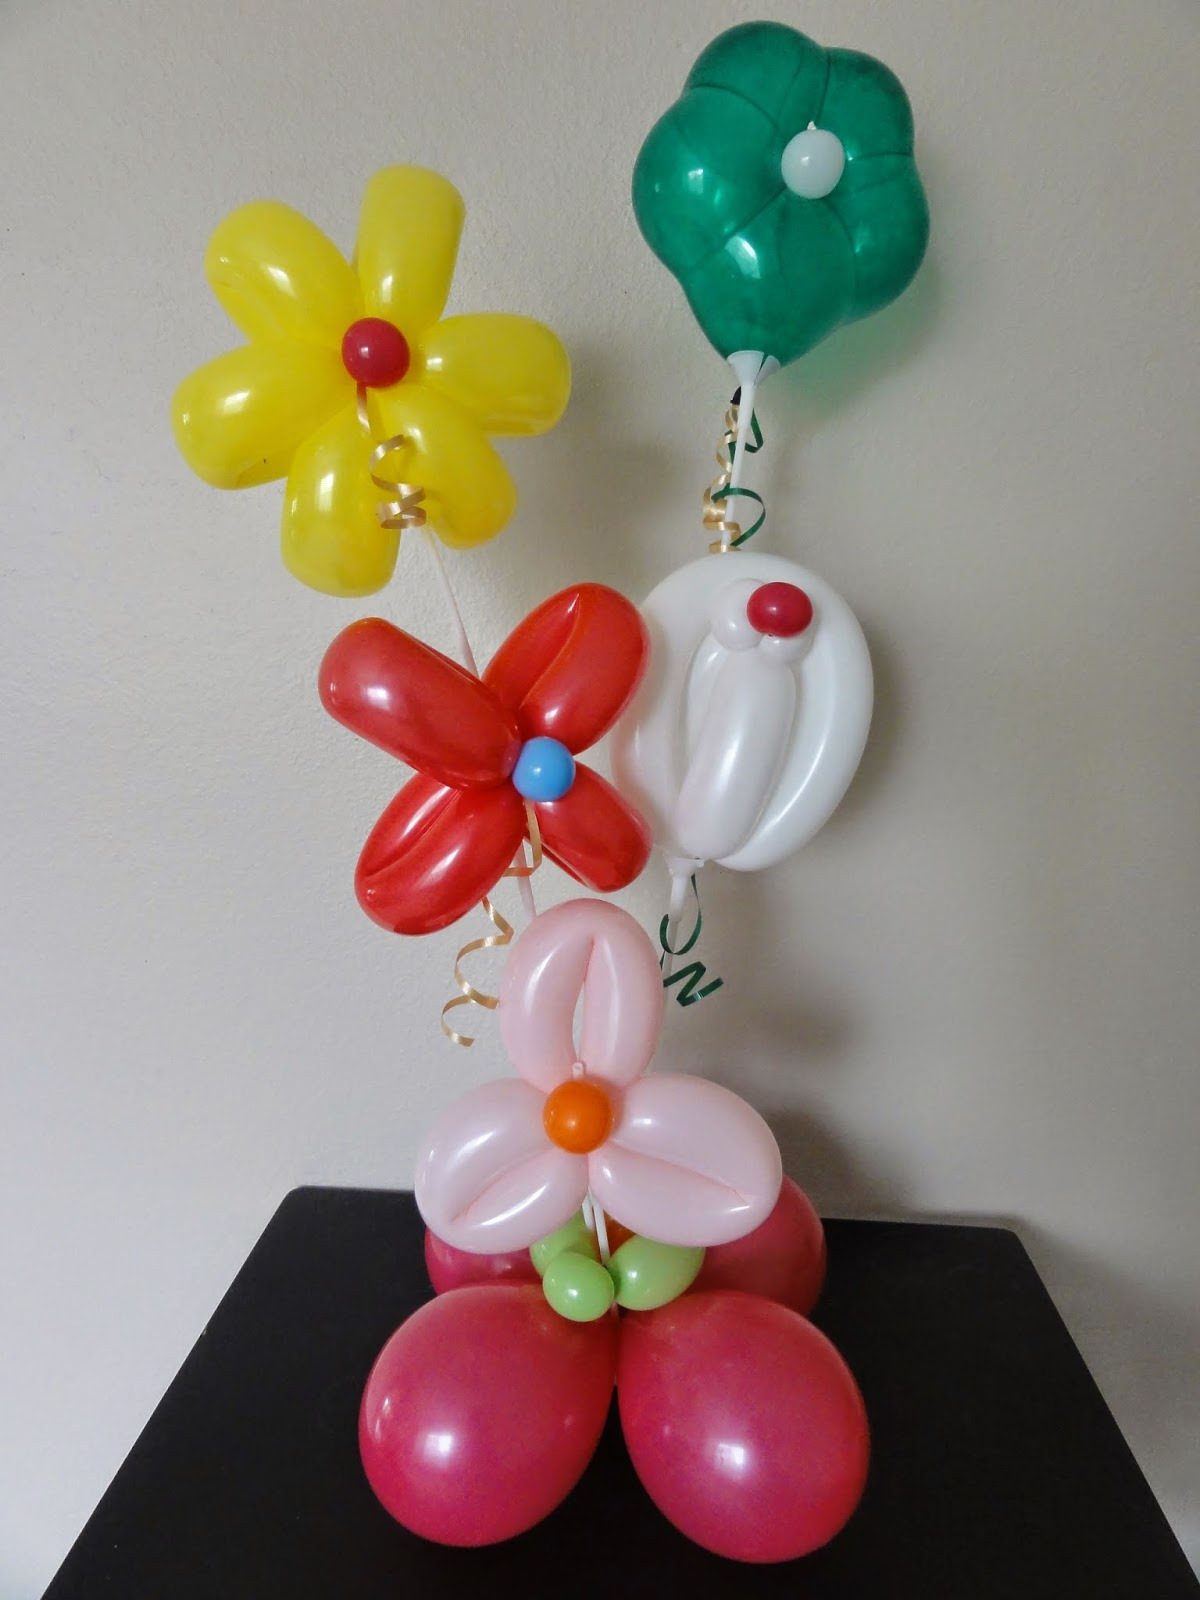 Balloon arch balloon ideas balloon decorations outdoor decorations - Santo Diamond Balloon Design April 2014